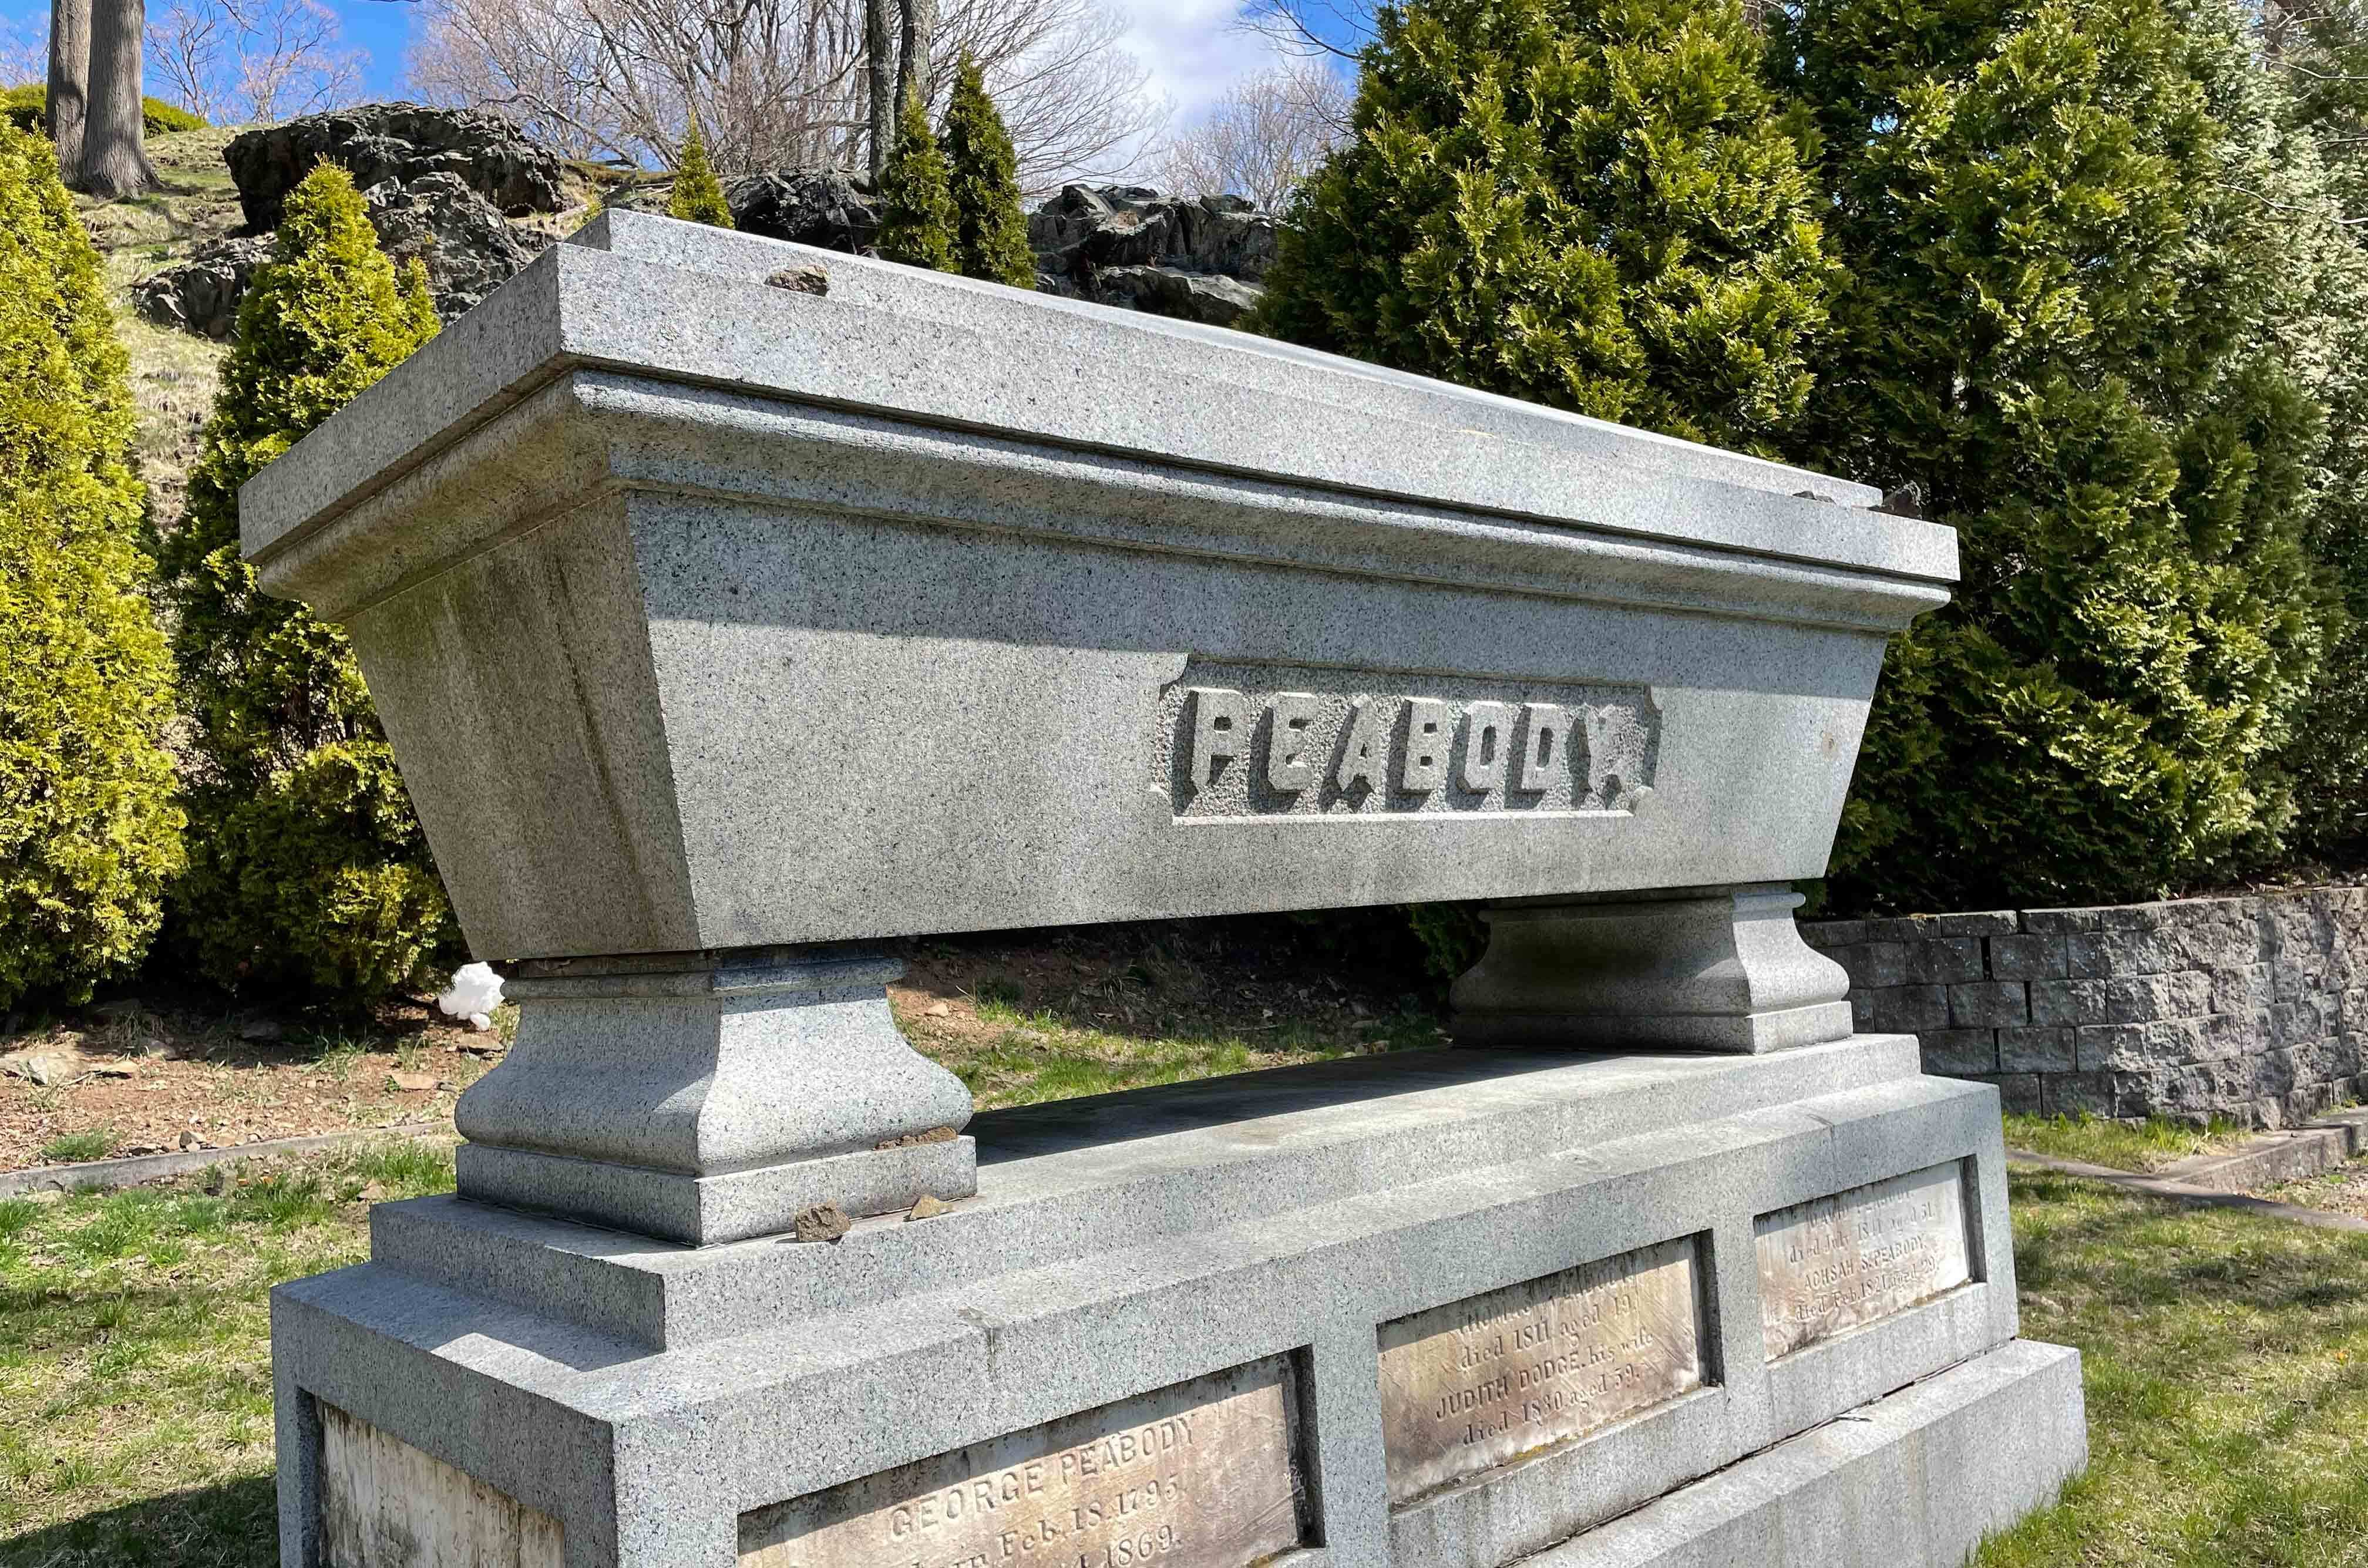 Incorporated in 1840, Harmony Grove cemetery straddles Peabody and Salem and is the final resting place for many philanthropists